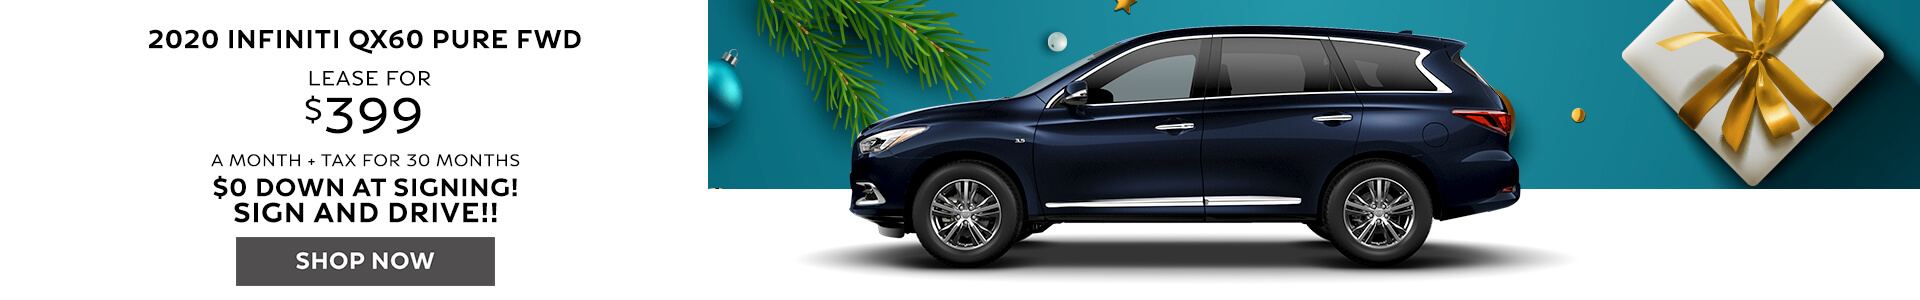 2020 QX60 - Lease for $399